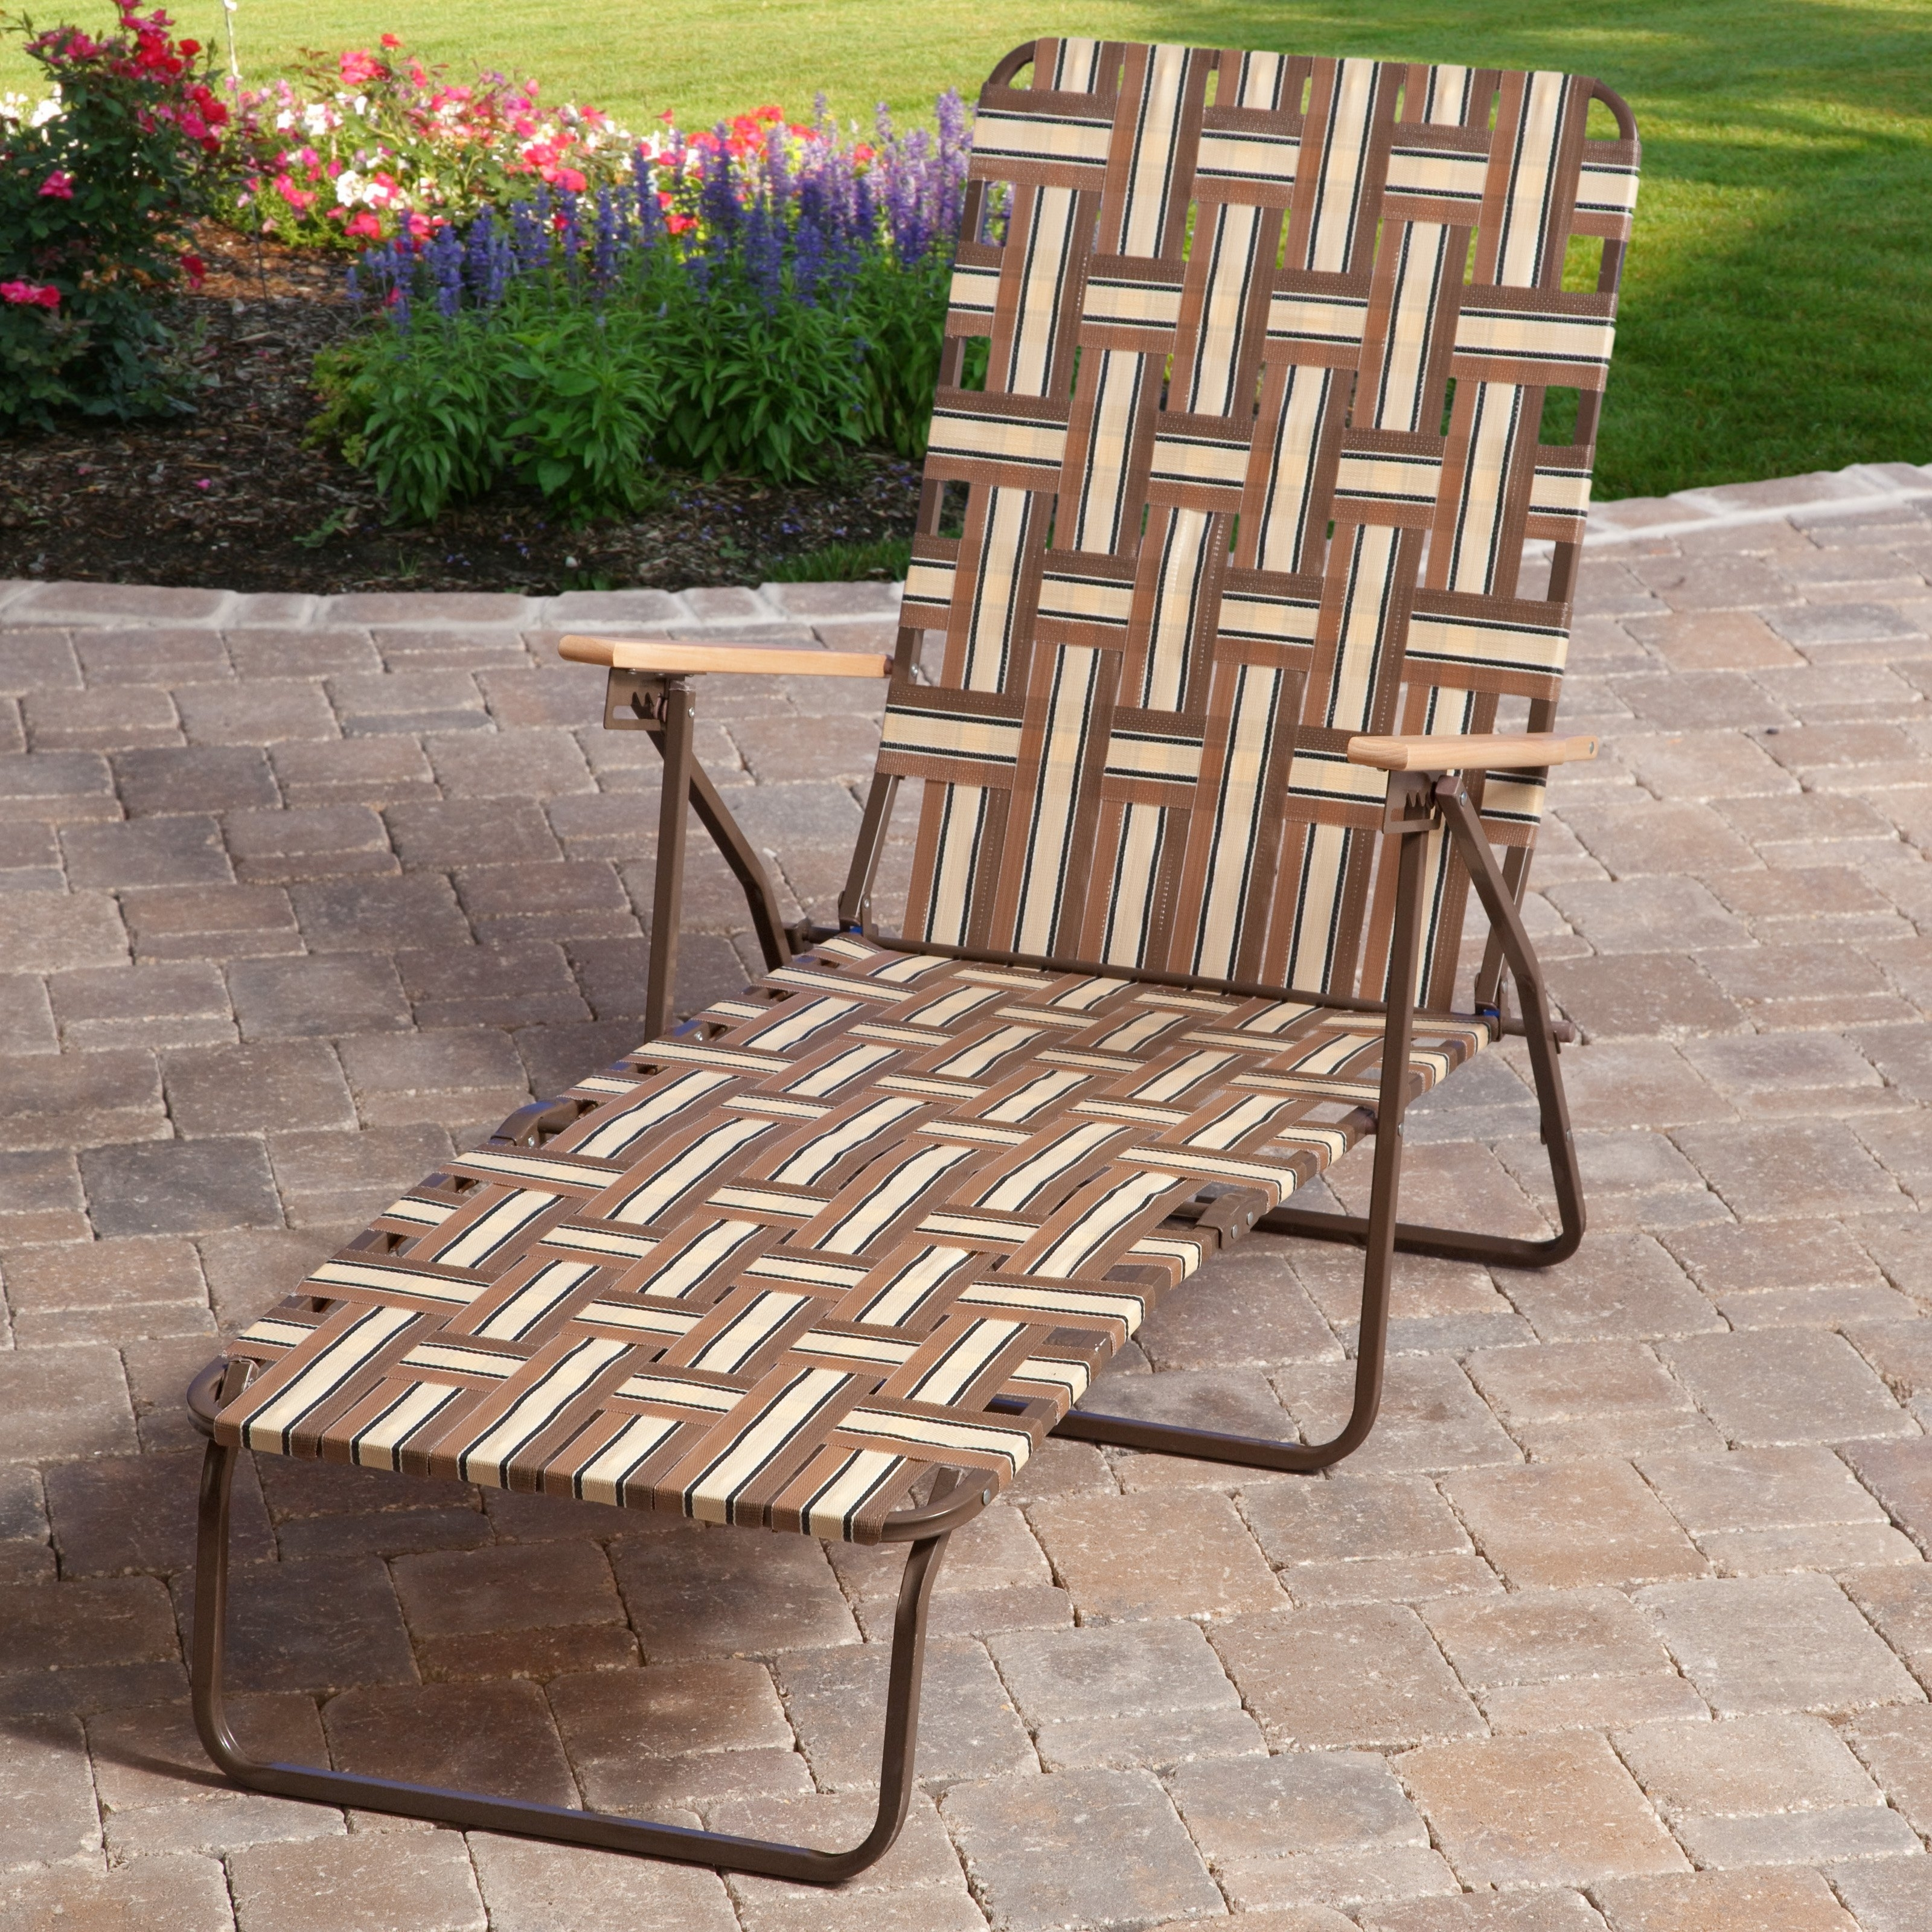 Most Up To Date Rio Deluxe Folding Web Chaise Lounge – Walmart Pertaining To Chaise Lawn Chairs (View 15 of 15)